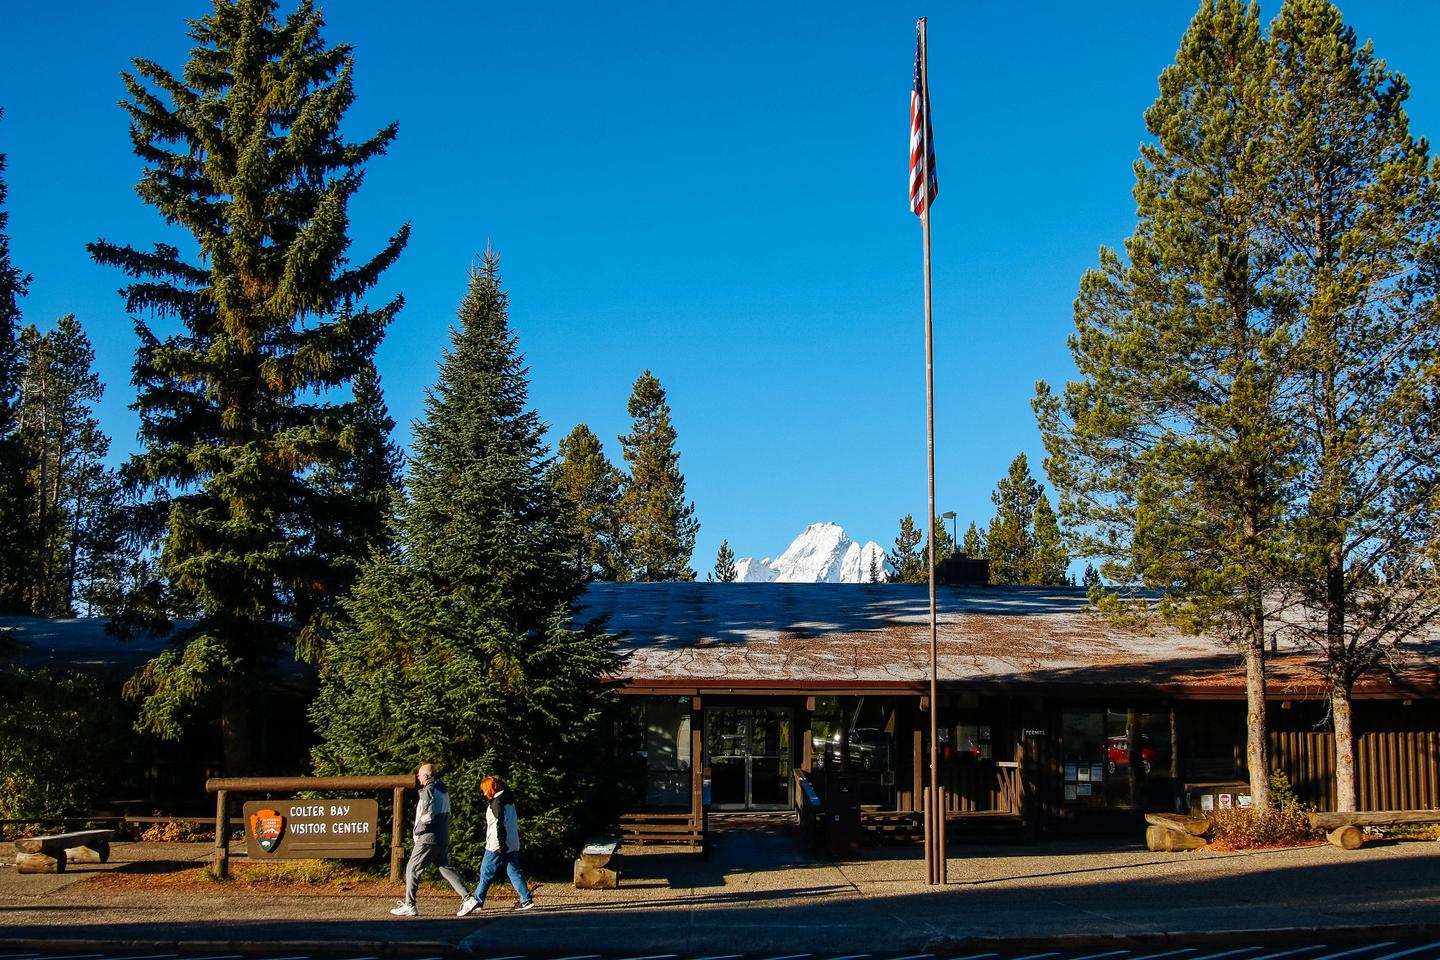 Colter Bay Visitor Center